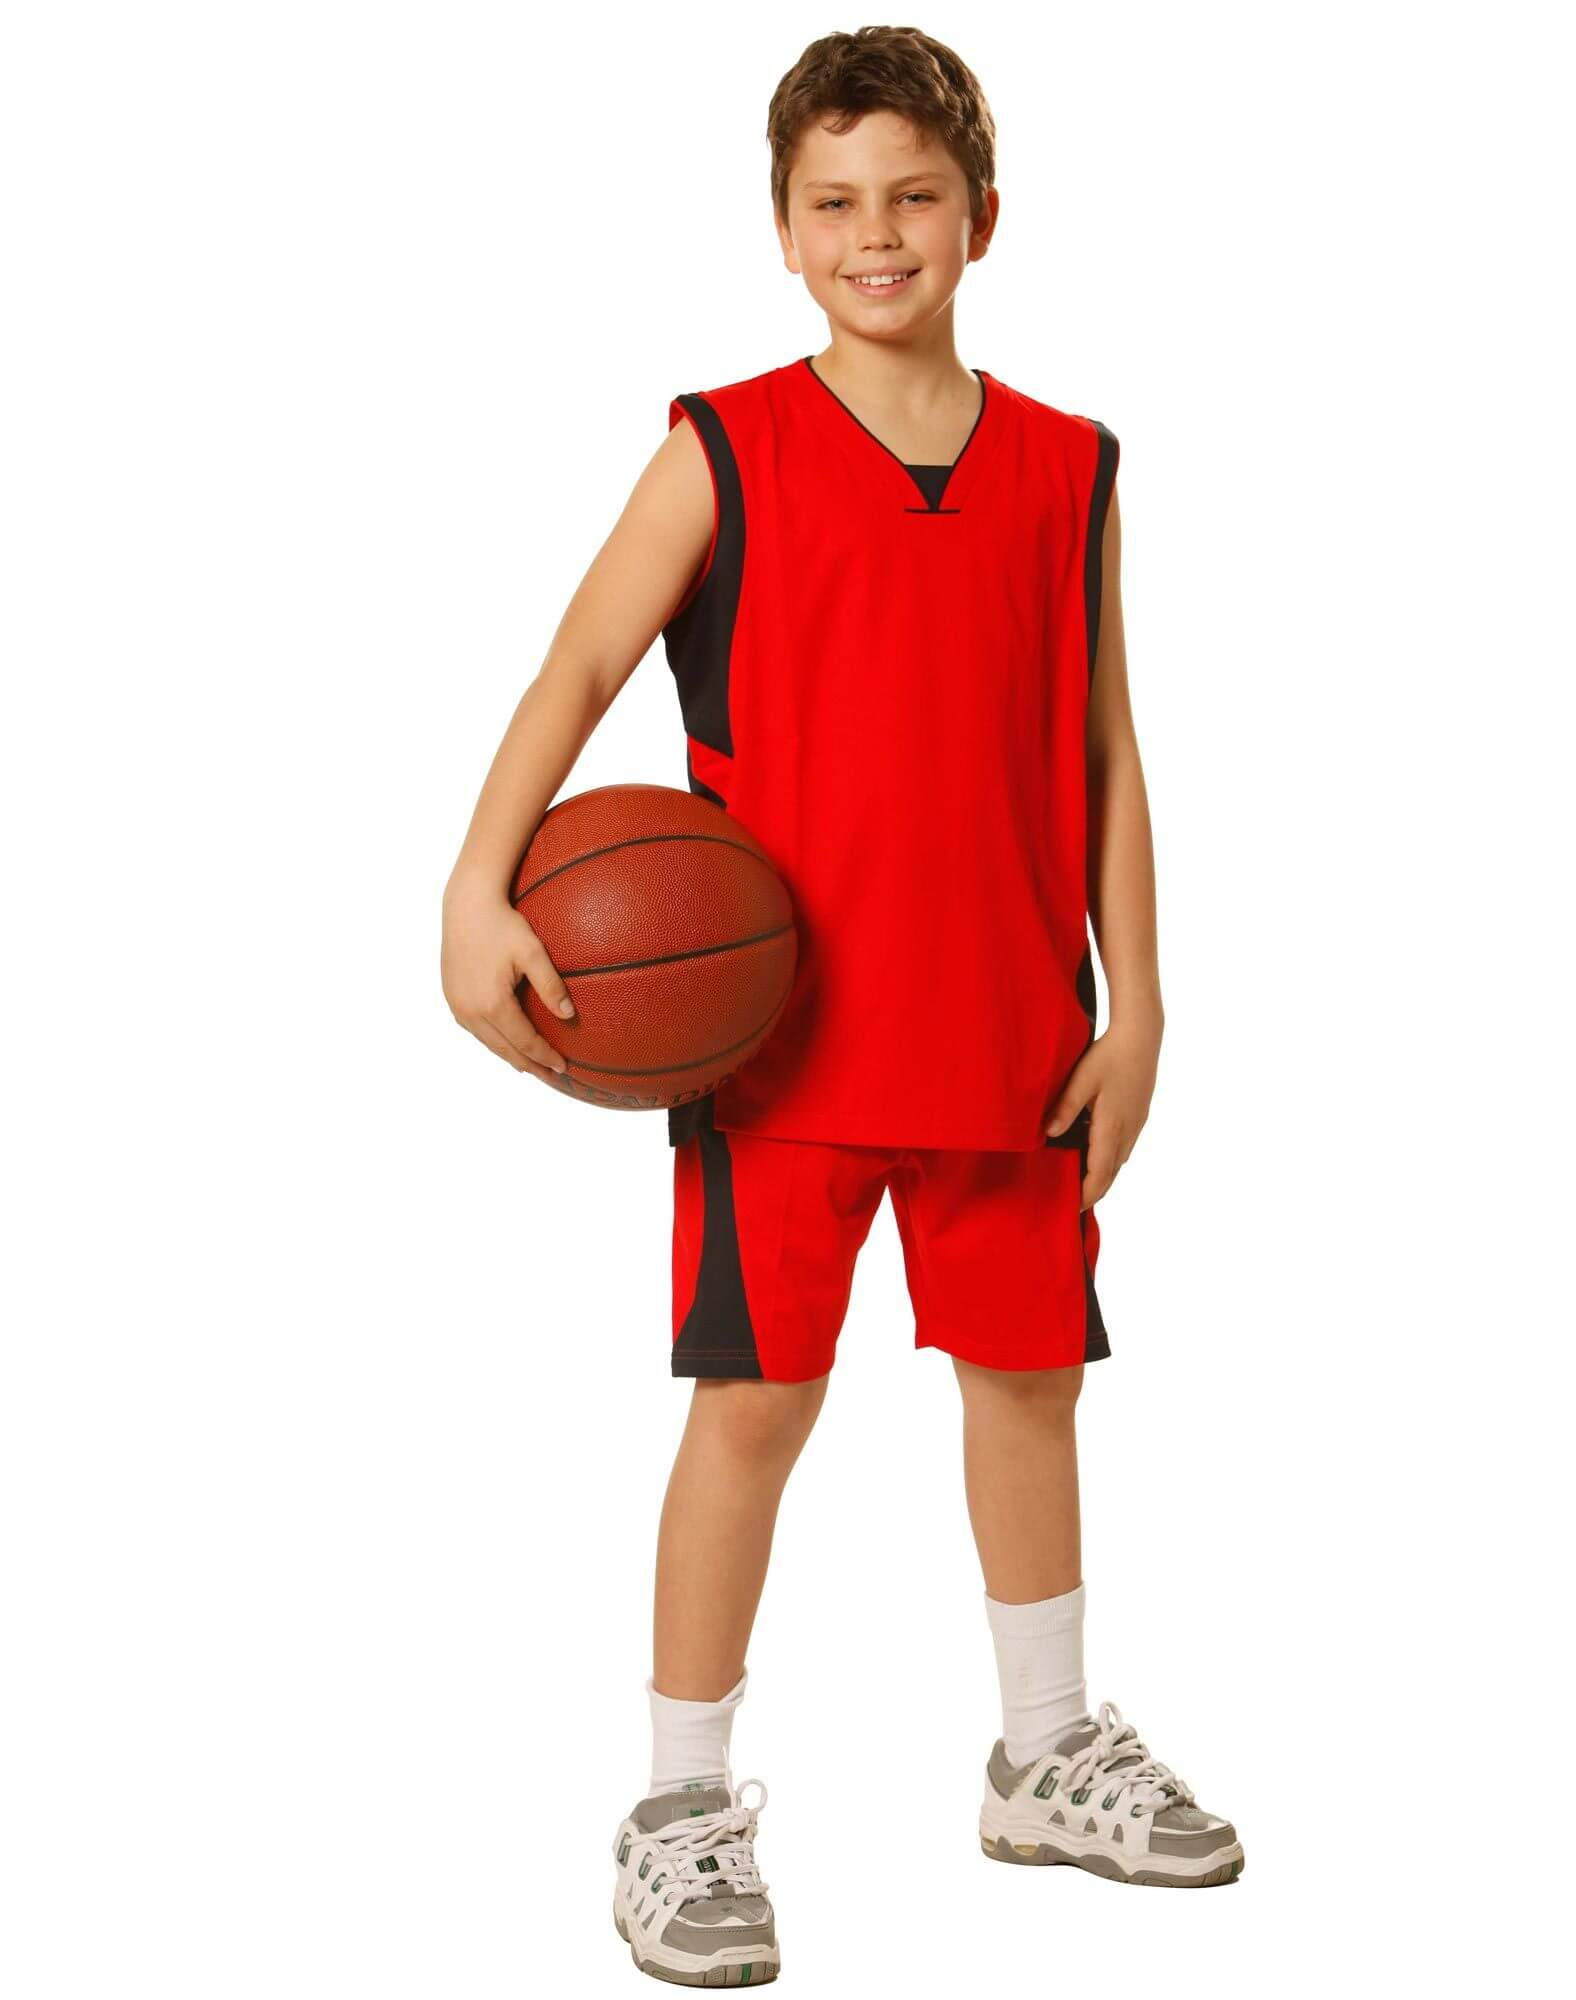 Kids Basketball Jerseys Manufacturers in Bikaner